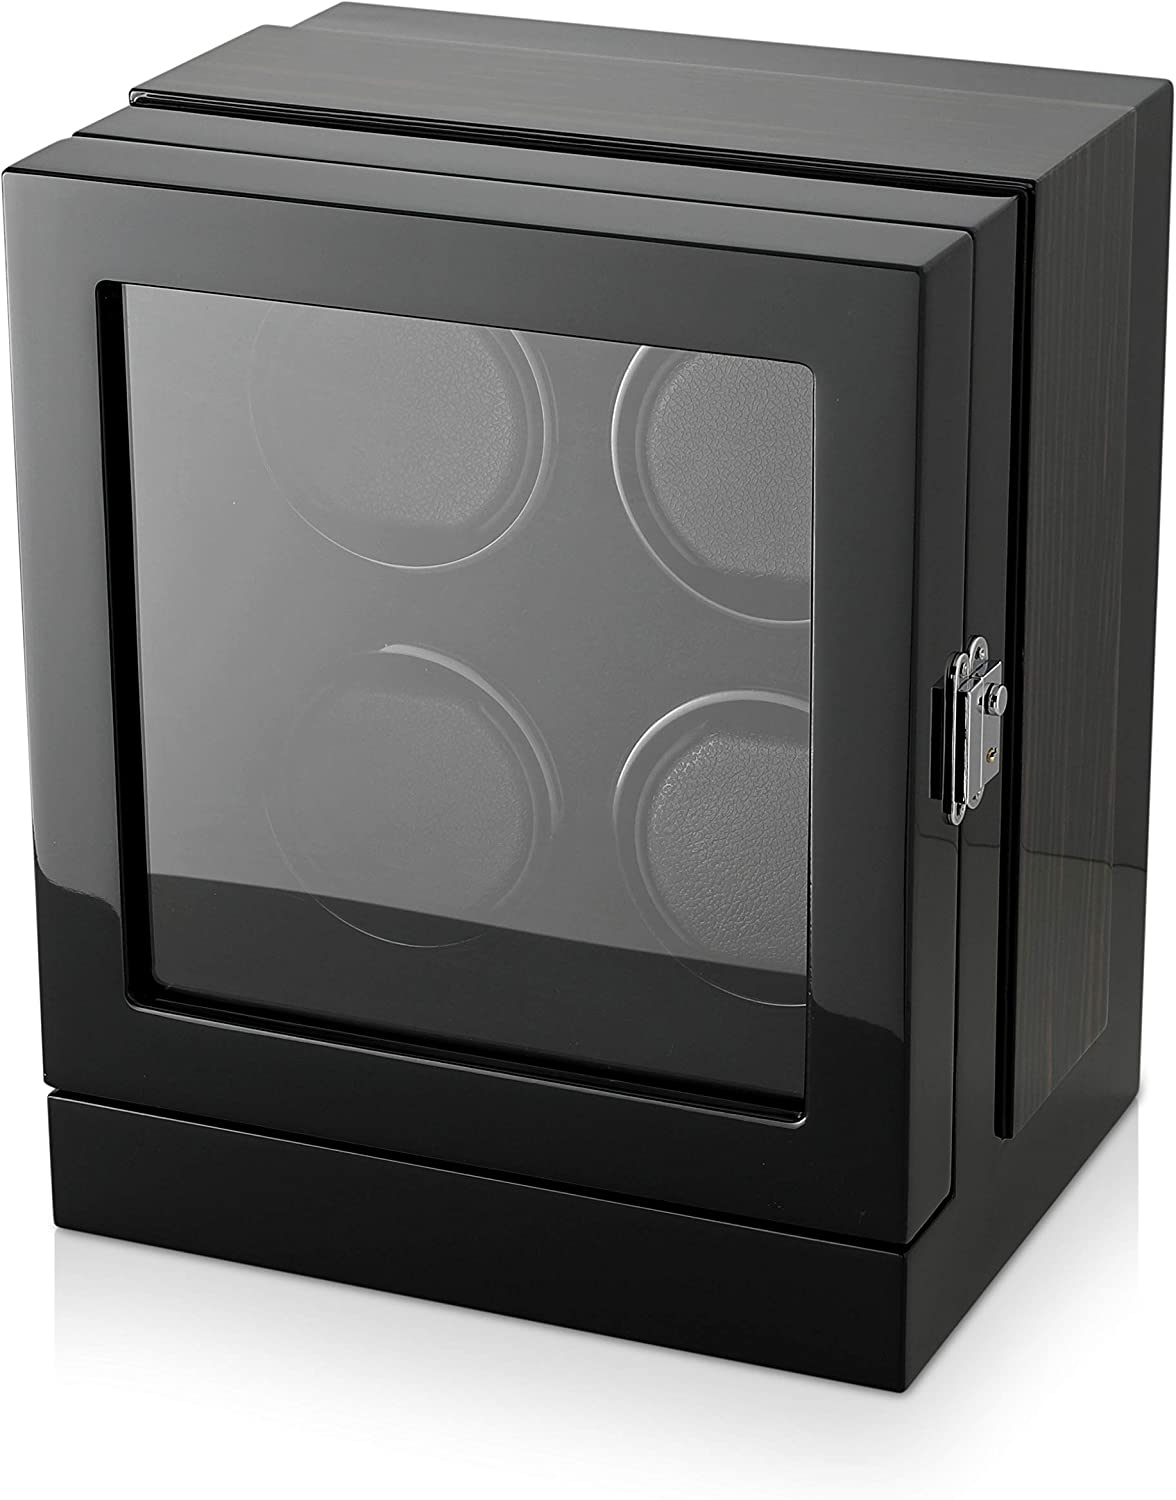 Watch Winder for 4 Watches with Max 88% OFF and Customisable LE Mode Winding Boston Mall